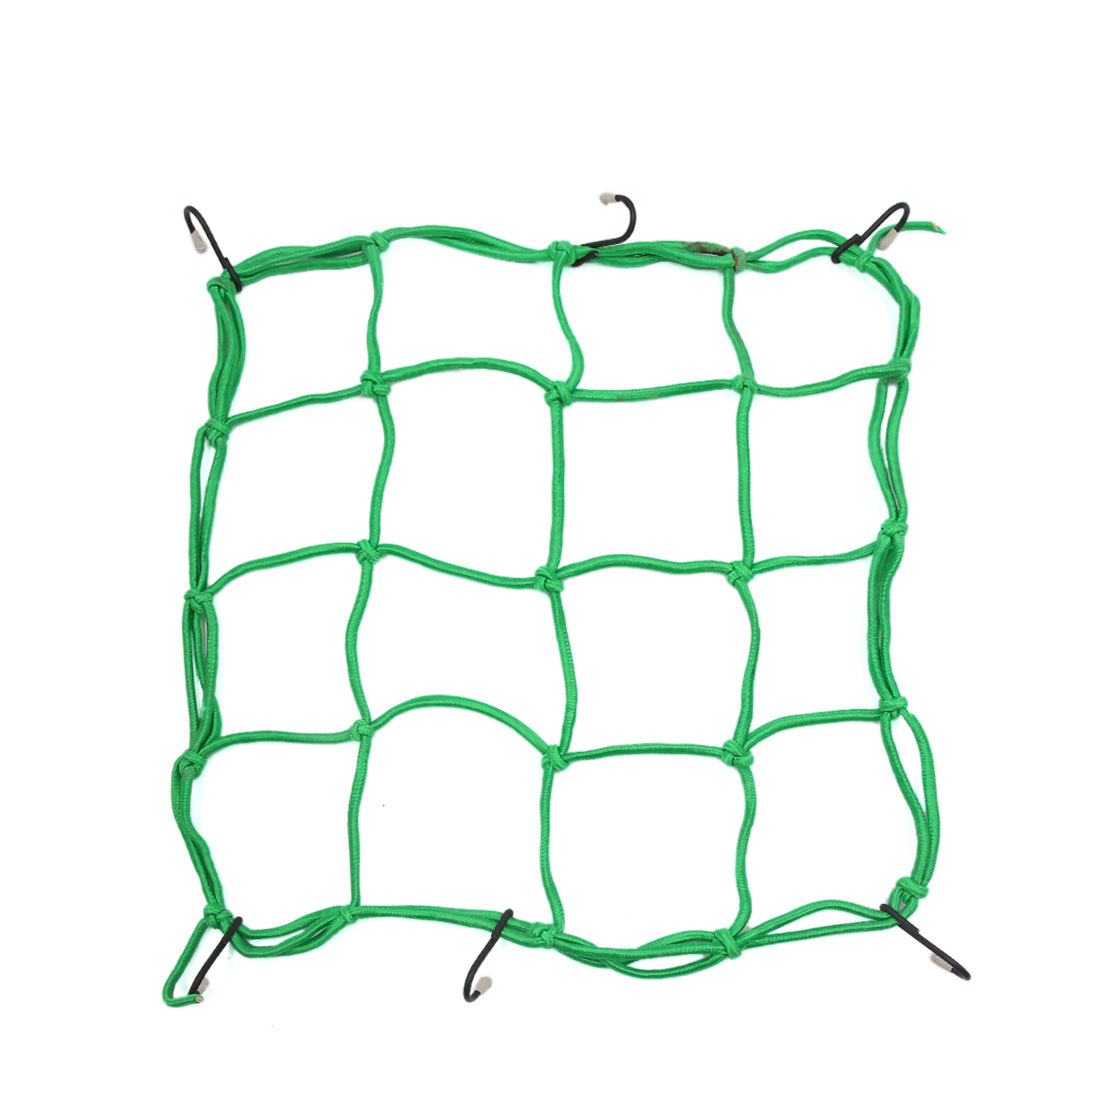 13'' x 13'' Green Elastic Helmet Cargo Luggage Storage Mesh Bungee Net for Bike Bicycle